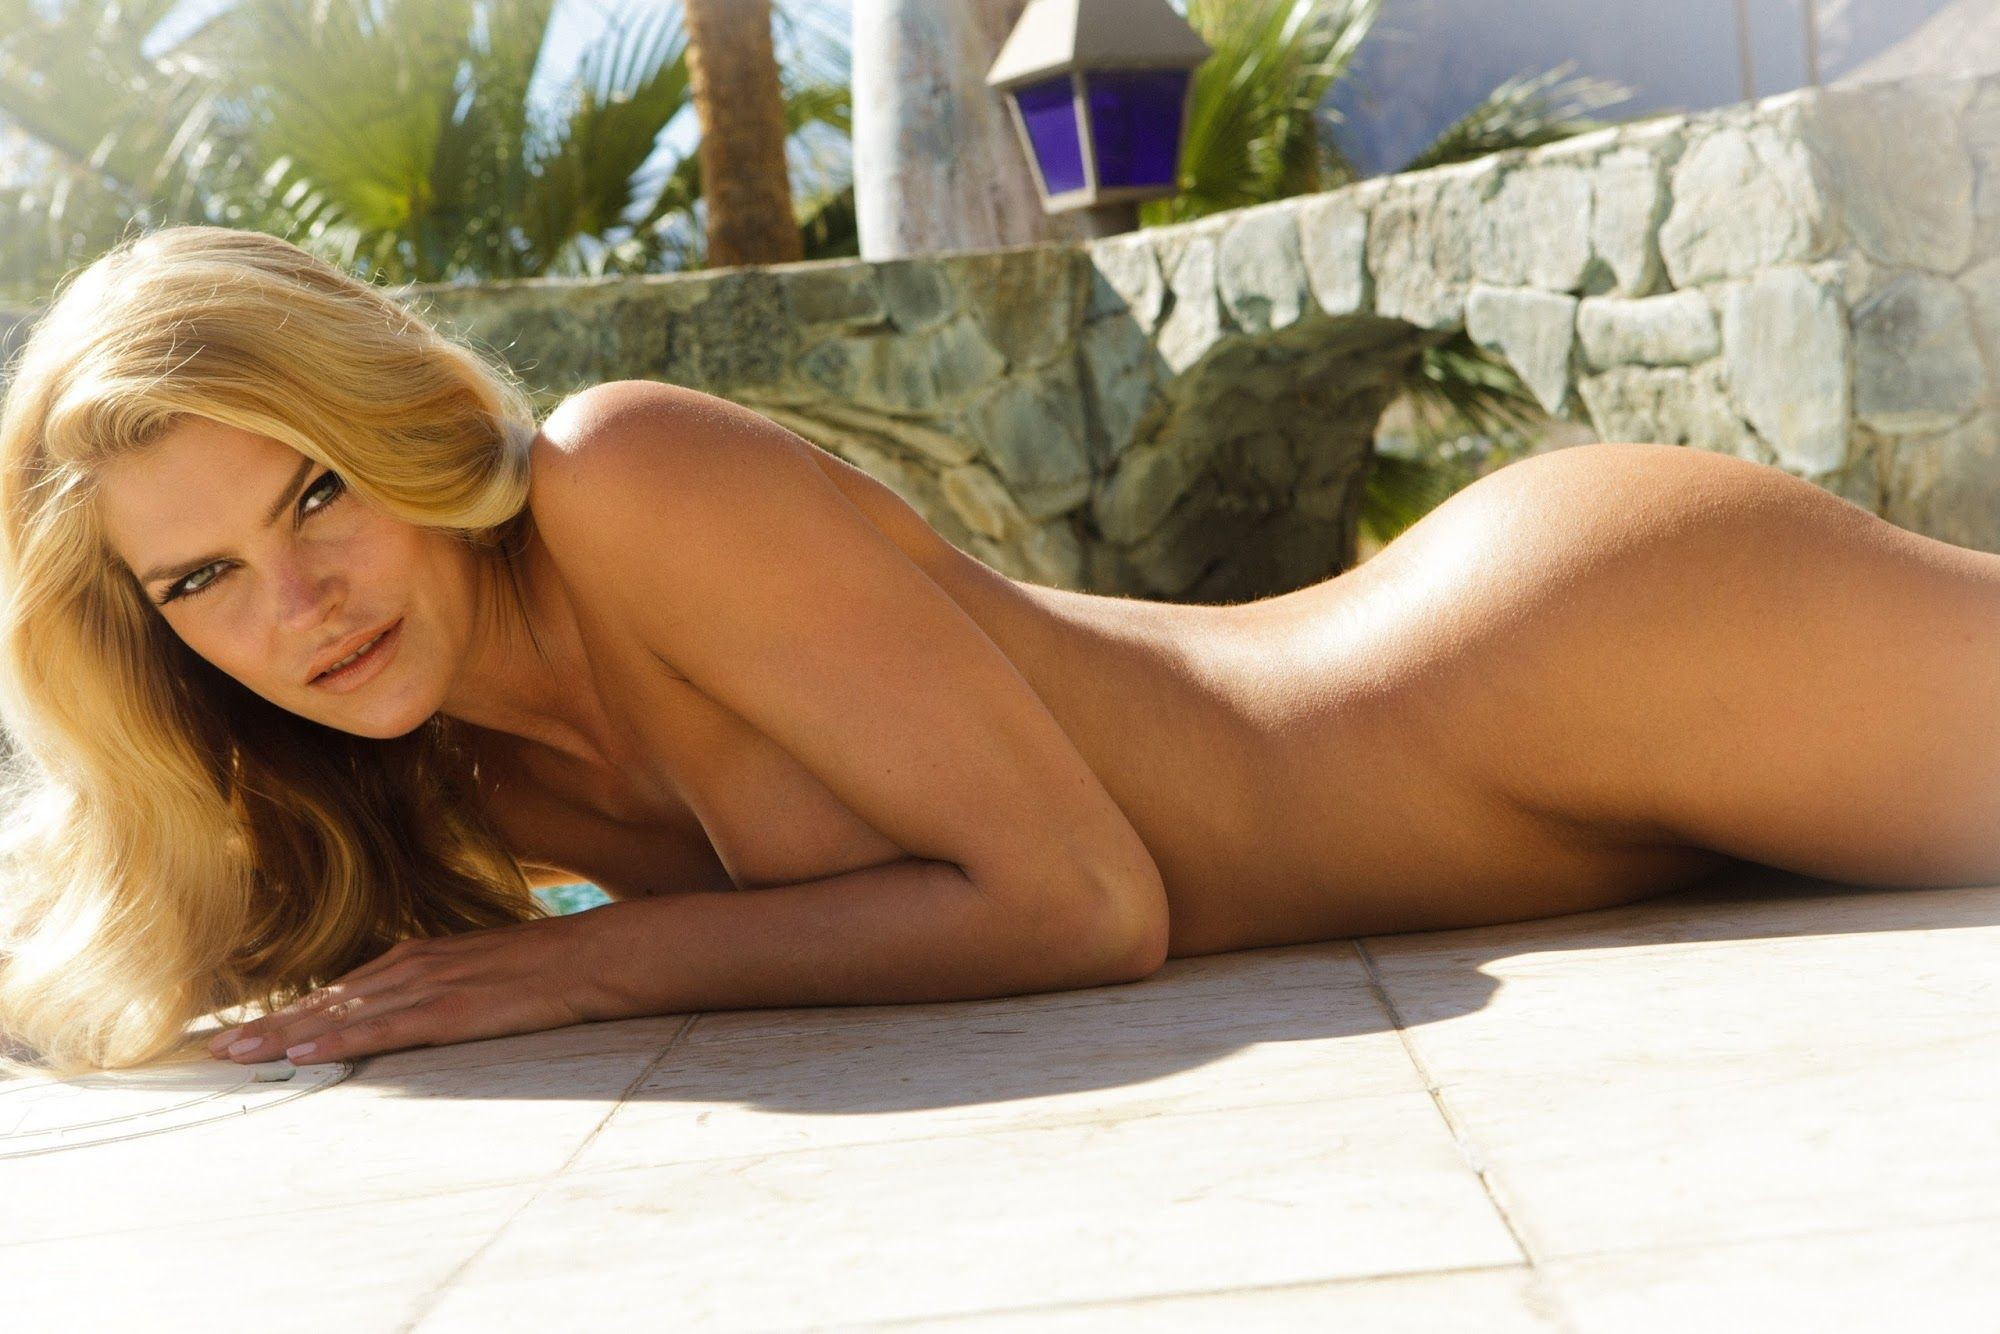 Lykke May Andersen nude photos leaked The Fappening